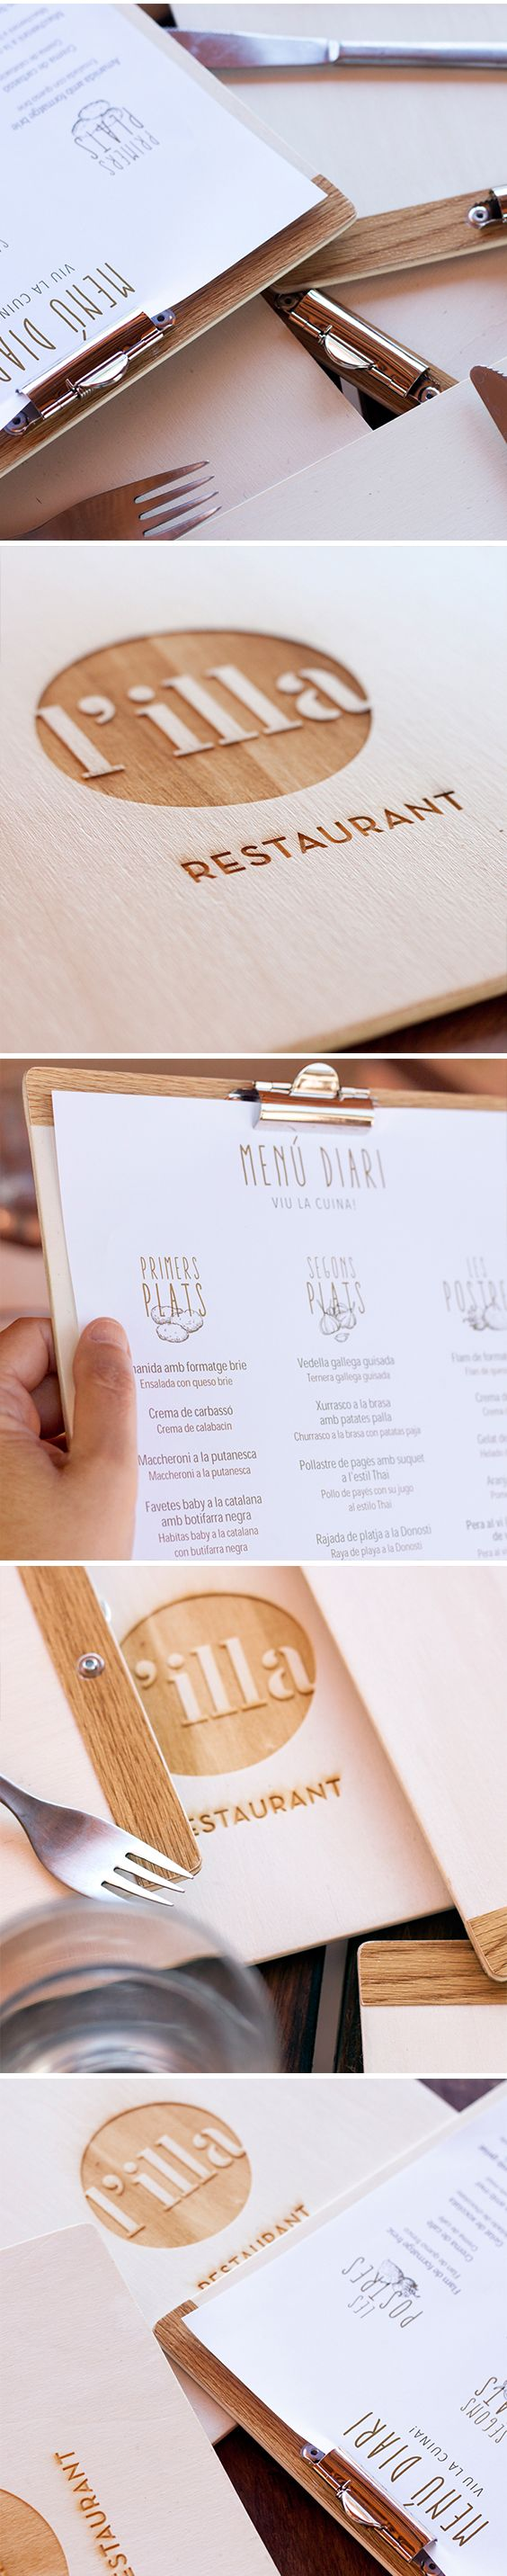 A Restaurant Menu Design. The Logo Is Printed By Laser On Wood. A Good